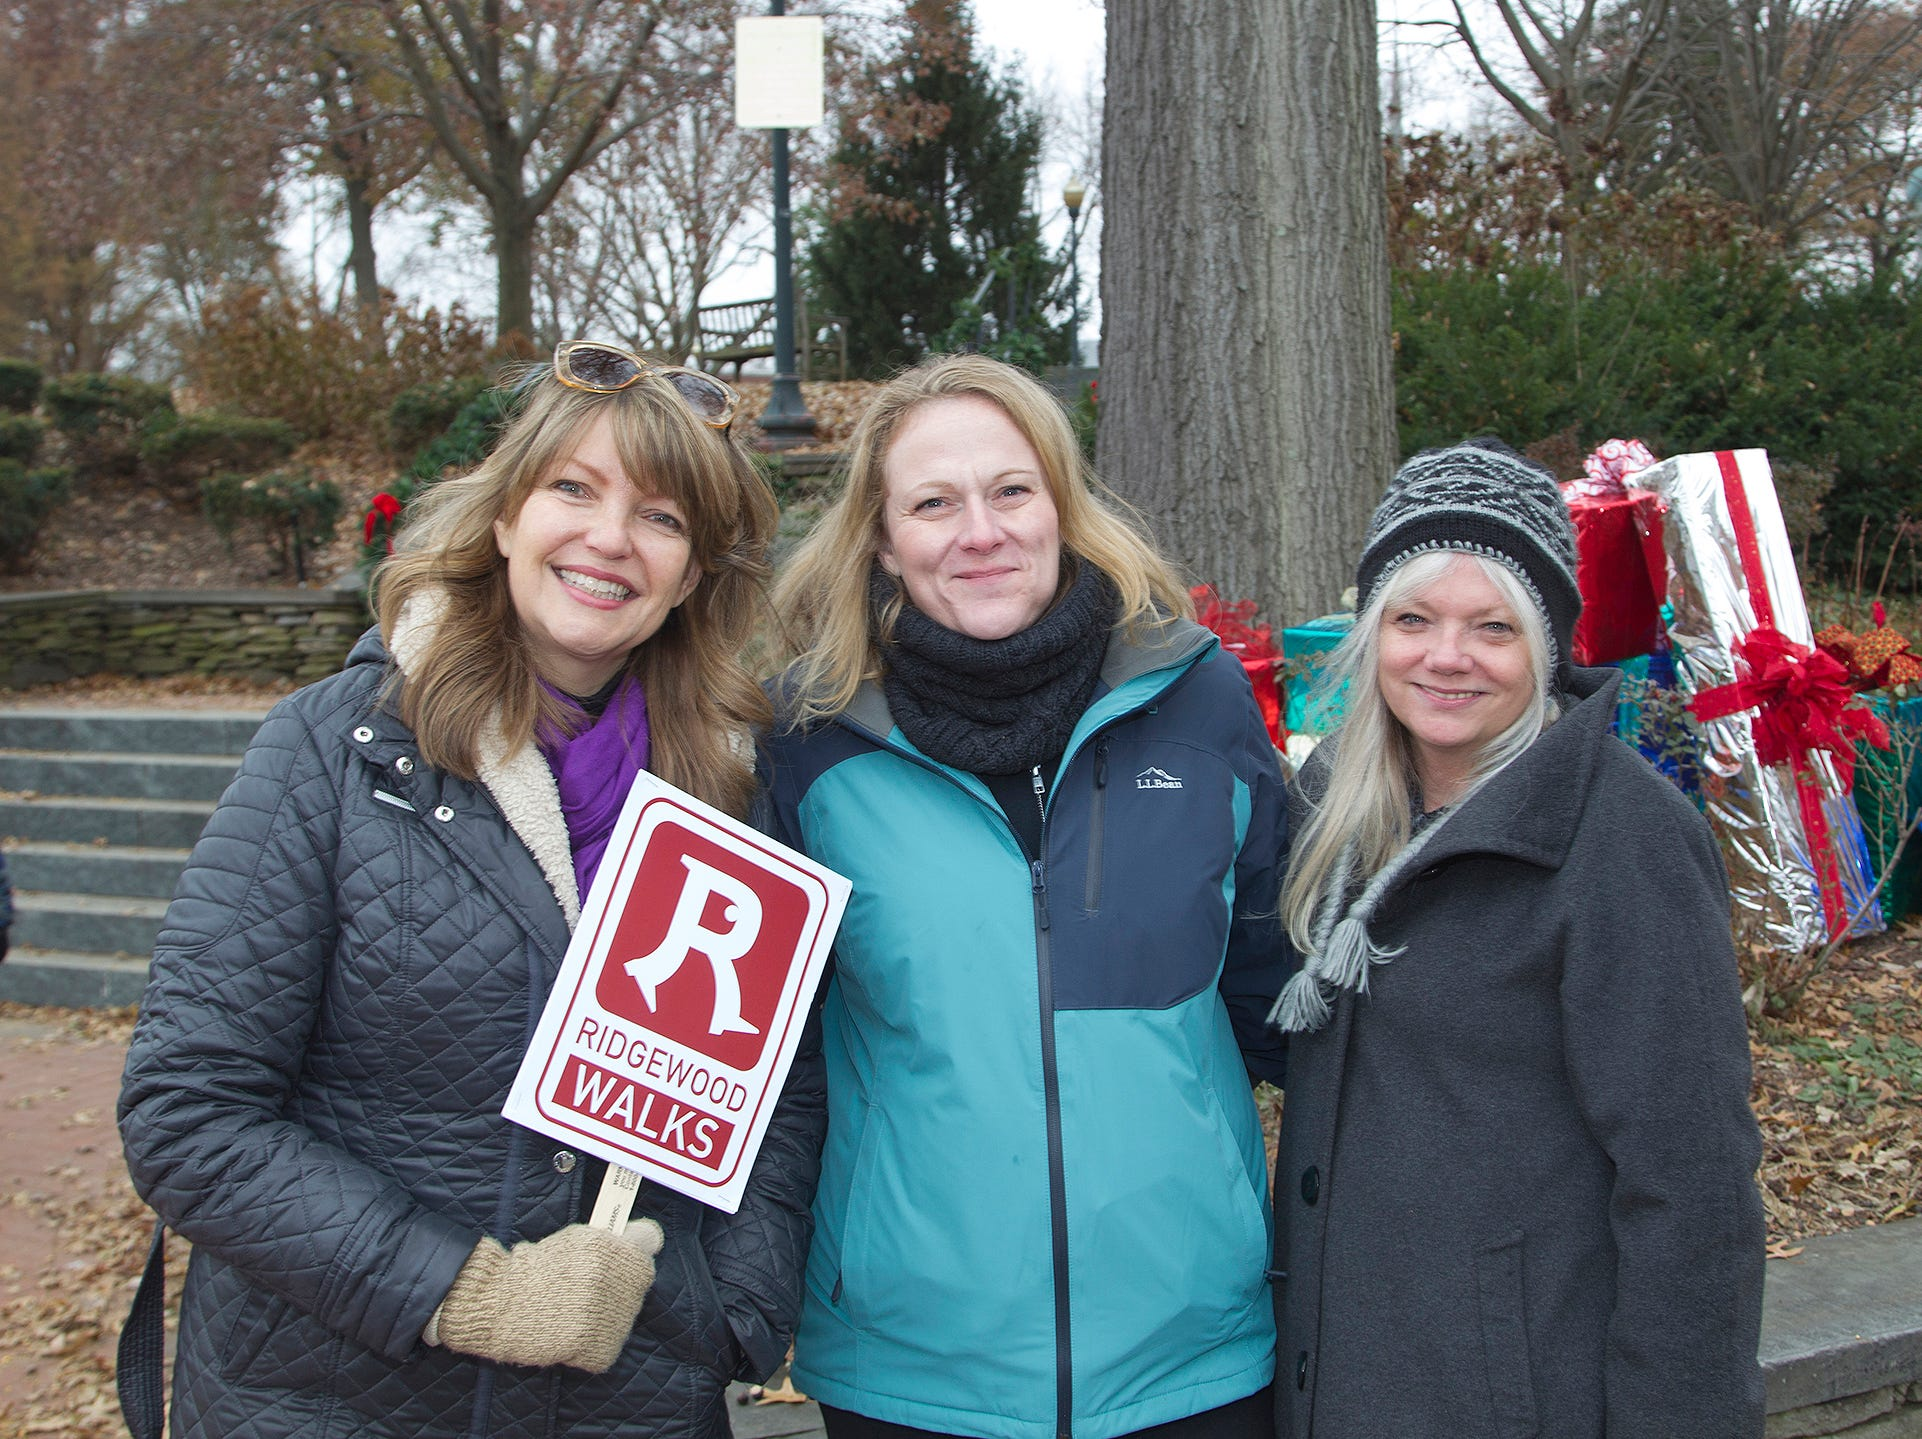 Jeanne Johnson, Frances Mertz, Lynne Freeman. The Ridgewood Guild sponsors Winter Fest at Van Neste Park in Ridgewood. 11/24/2018